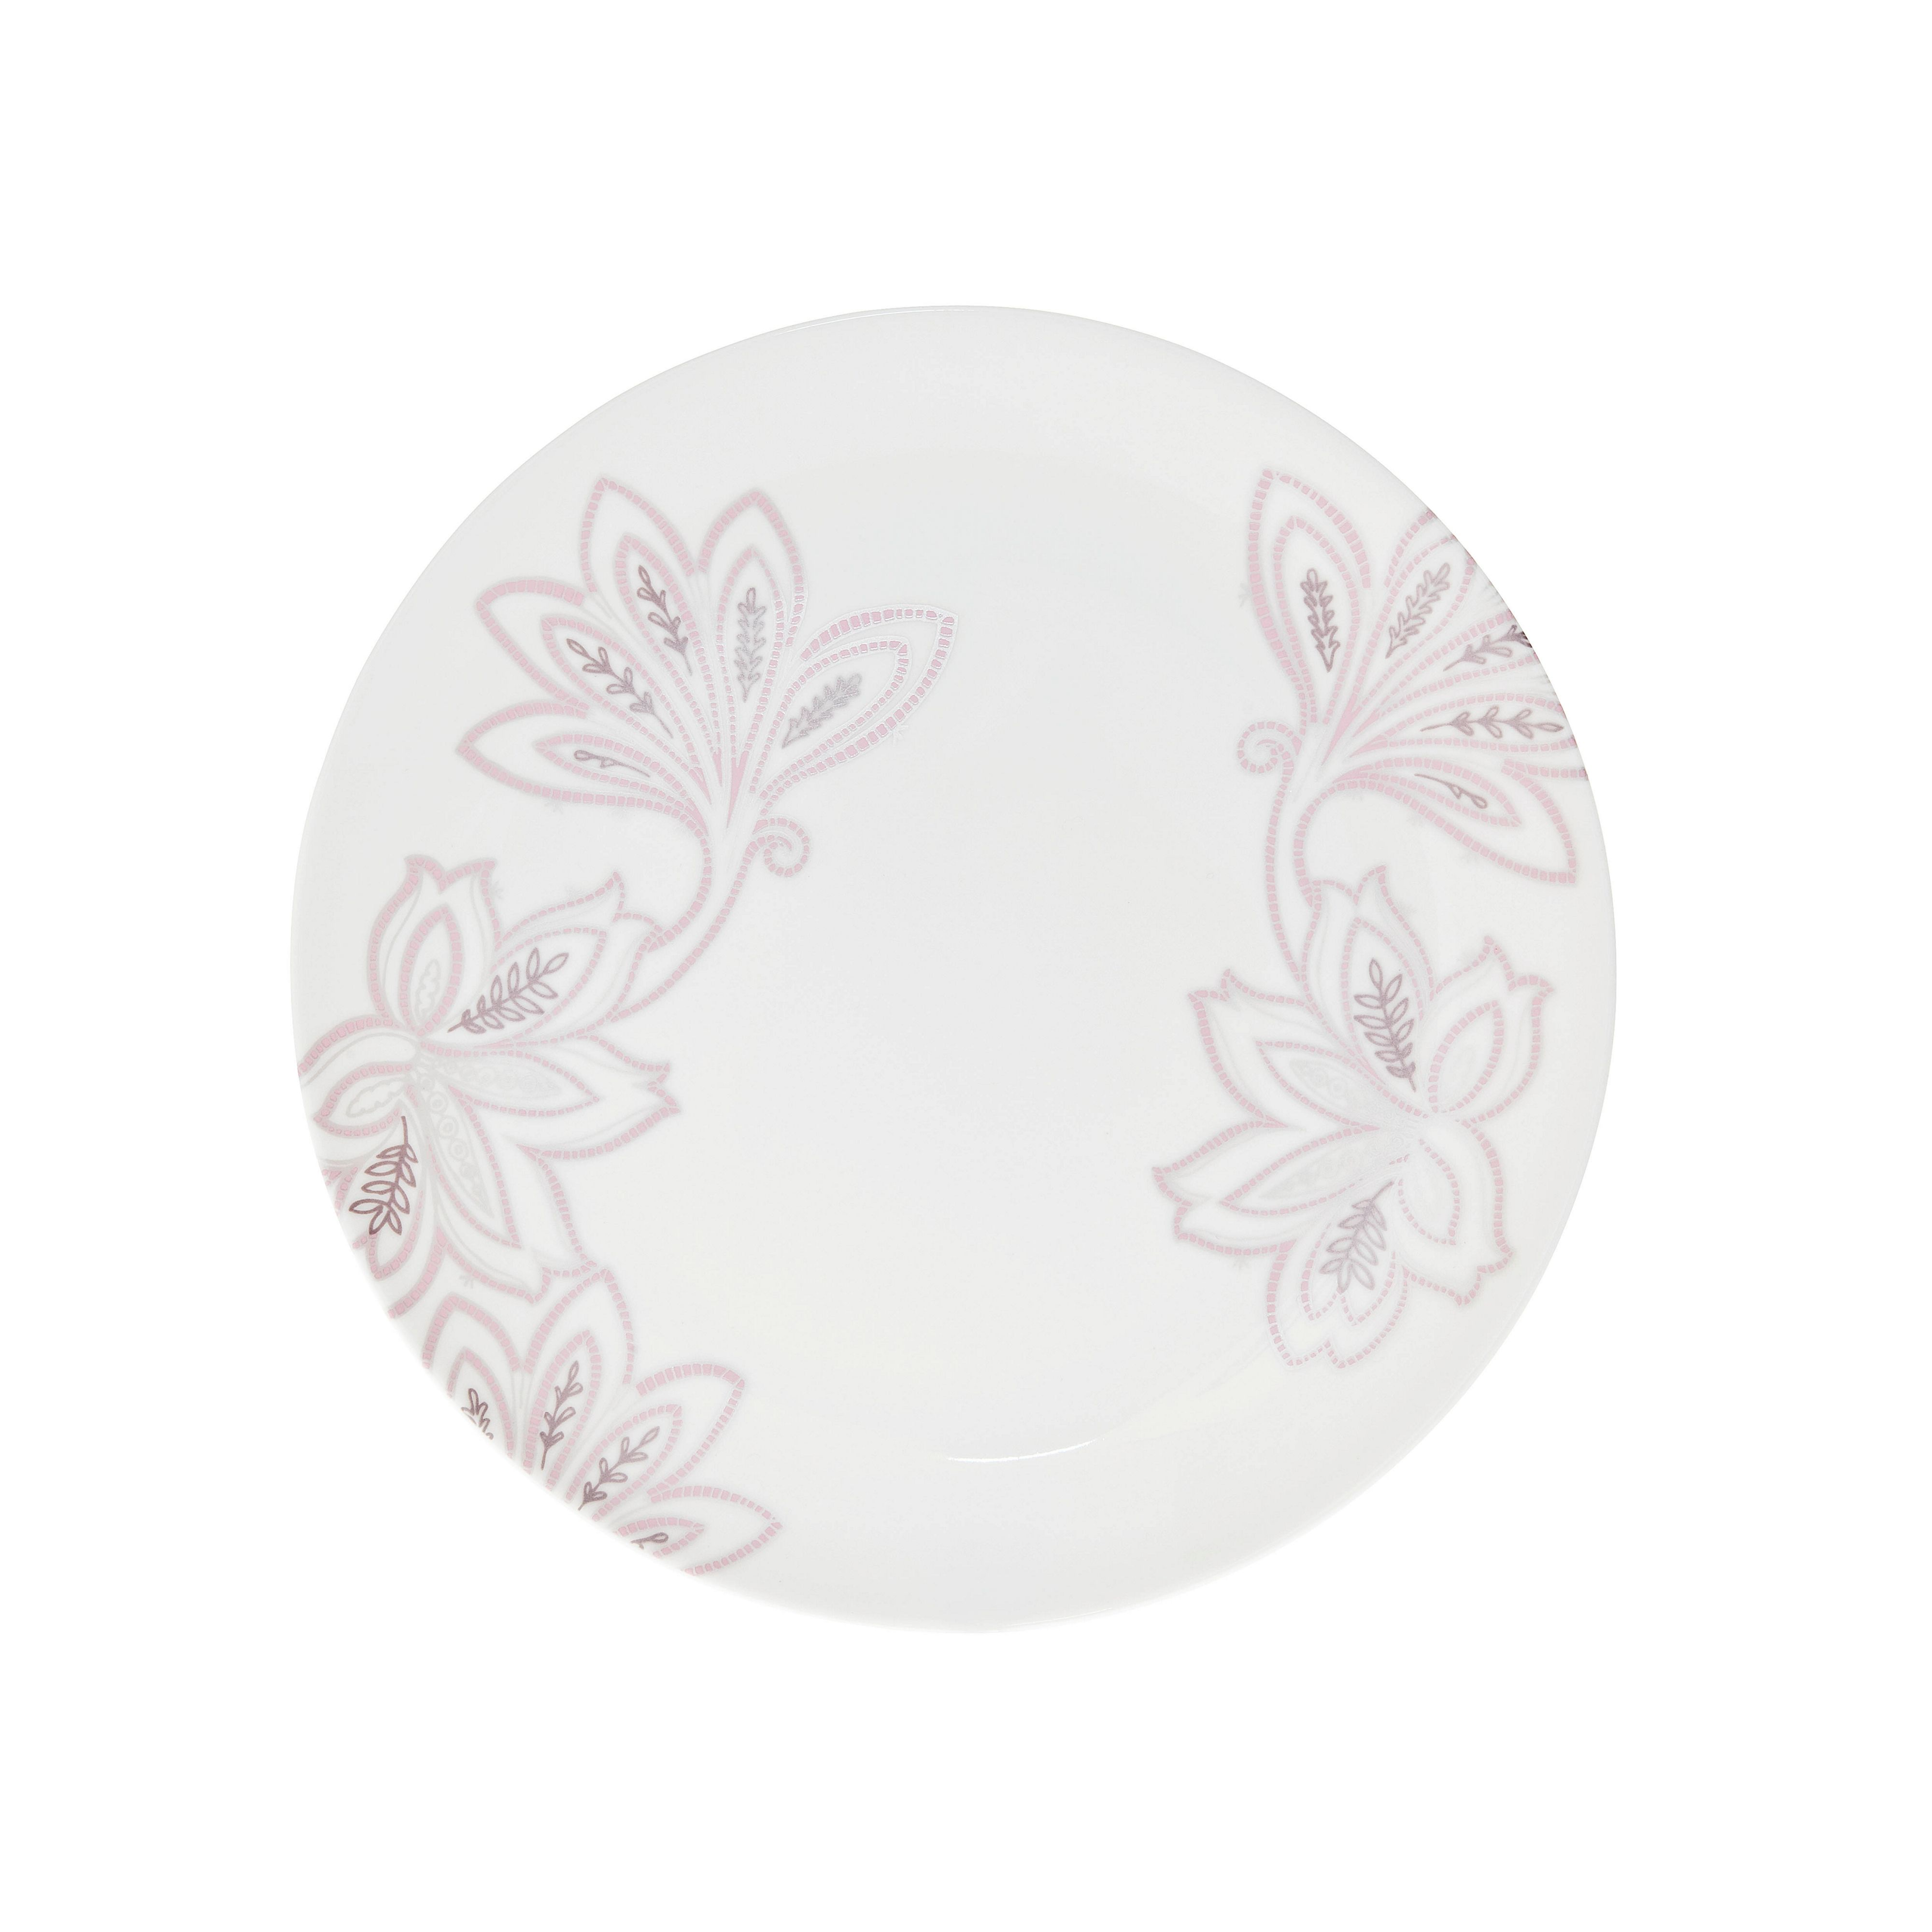 Chantilly salad plate, cream